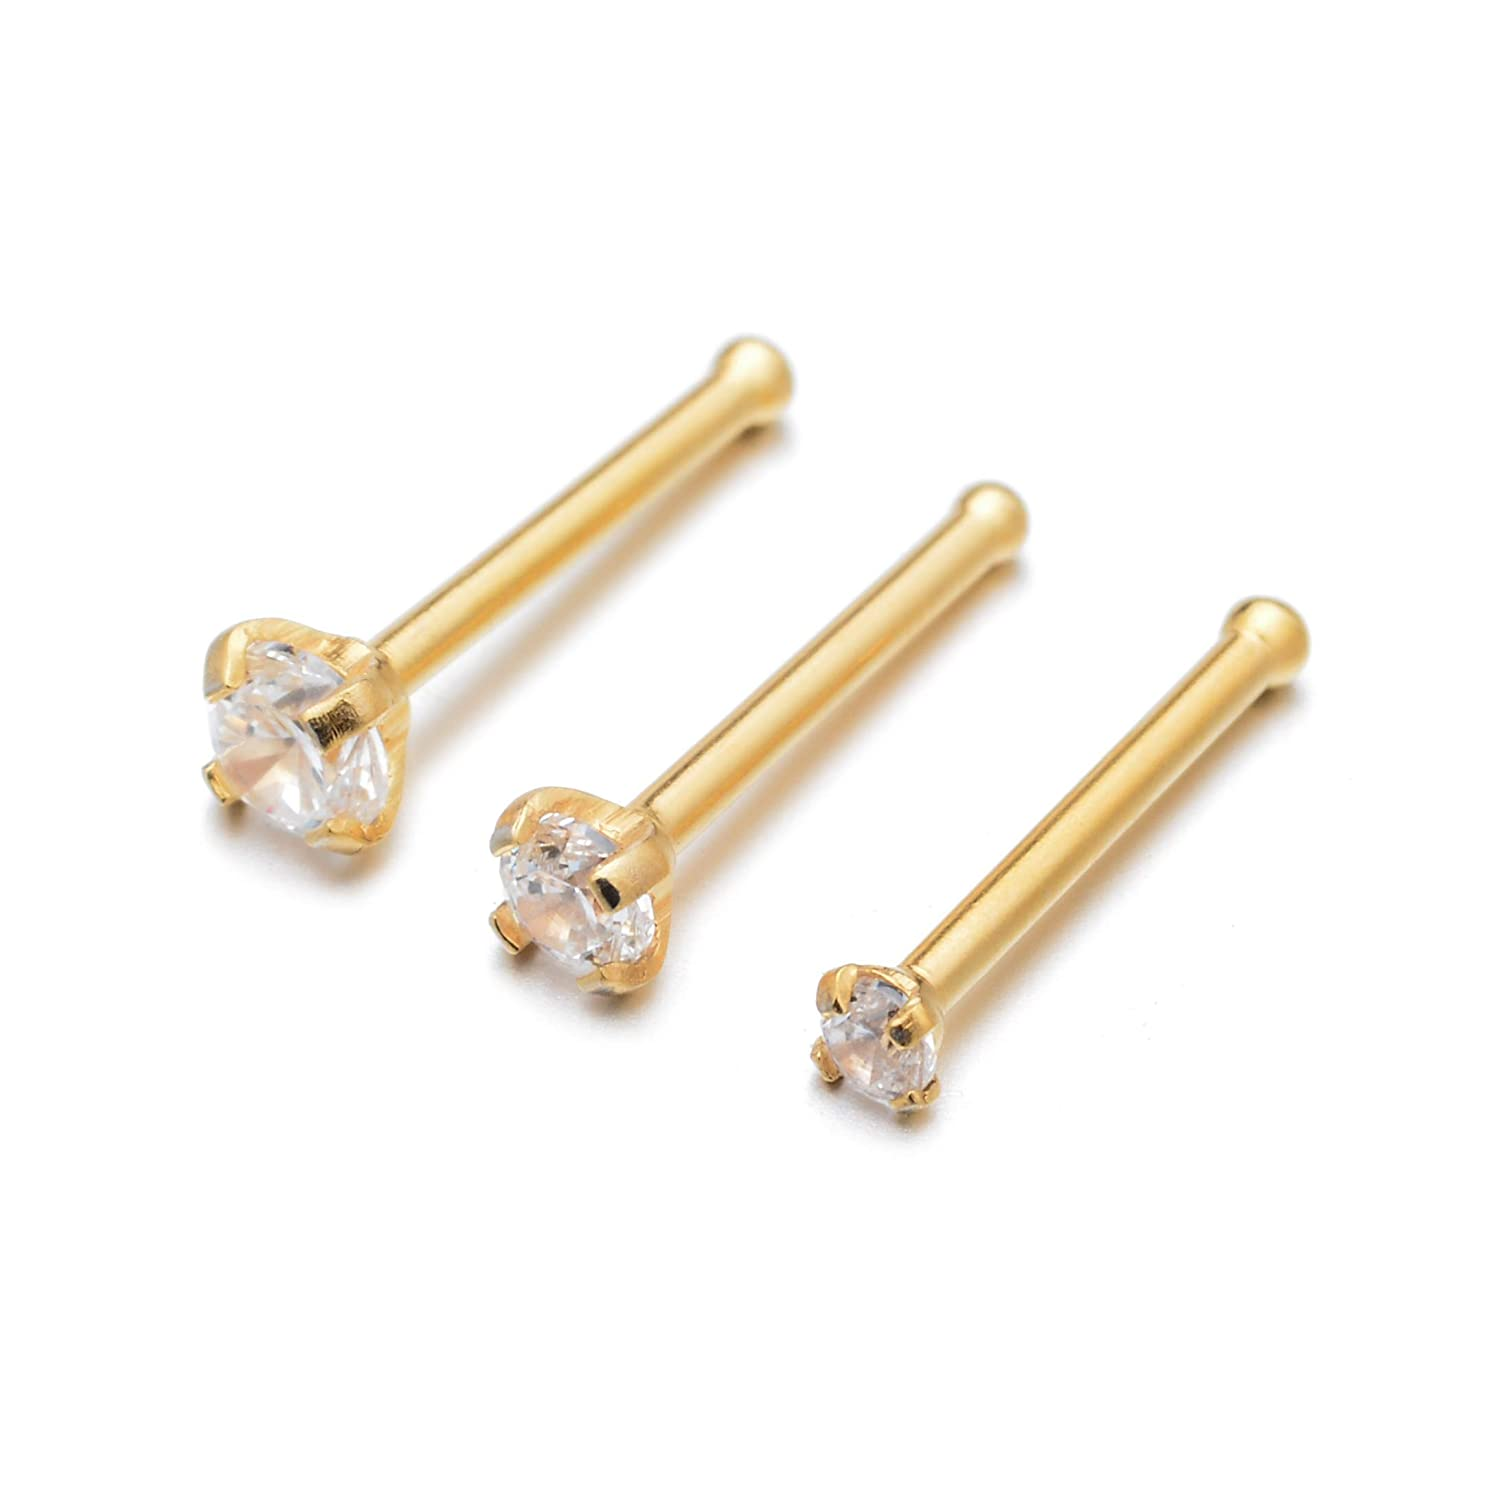 BodyPJ Sparkles 20G Clear CZ 316L Stainless Steel Nose Studs Rings Body Piercing 1.5mm 2.0mm 2.5mm